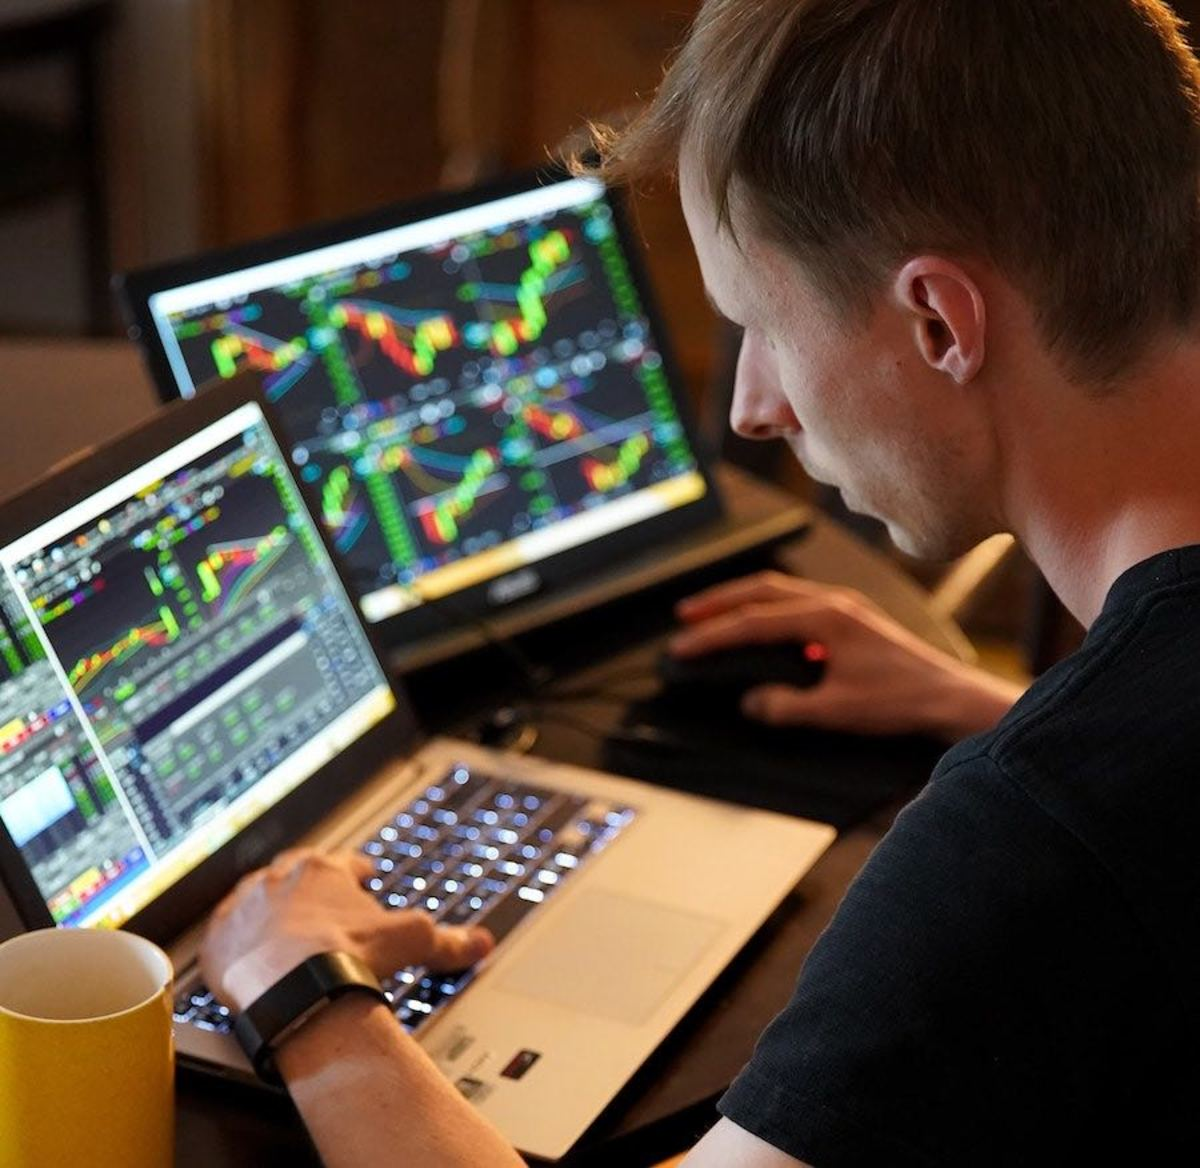 How to Trade Stock Options With a Defined Risk Strategy